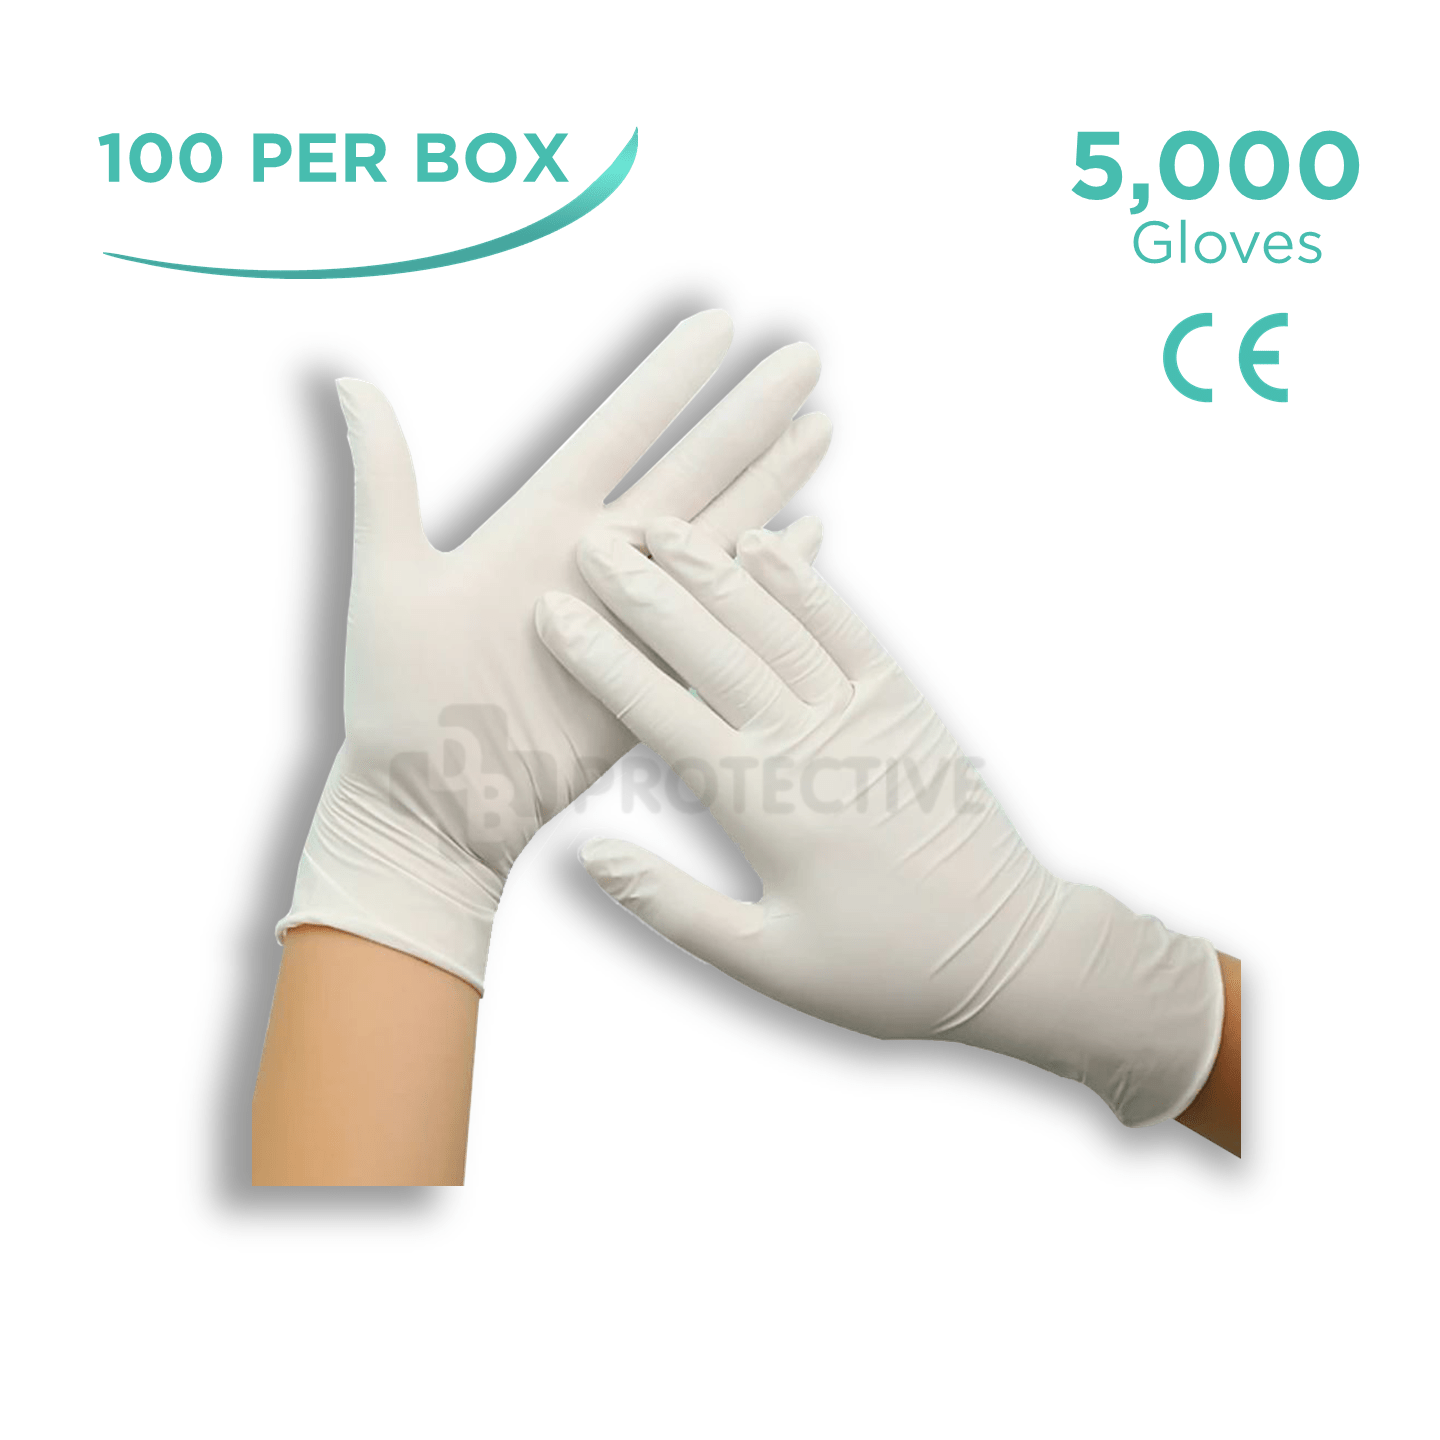 Latex Gloves - Pack of 5,000. - USA Medical Supply - DB Protective